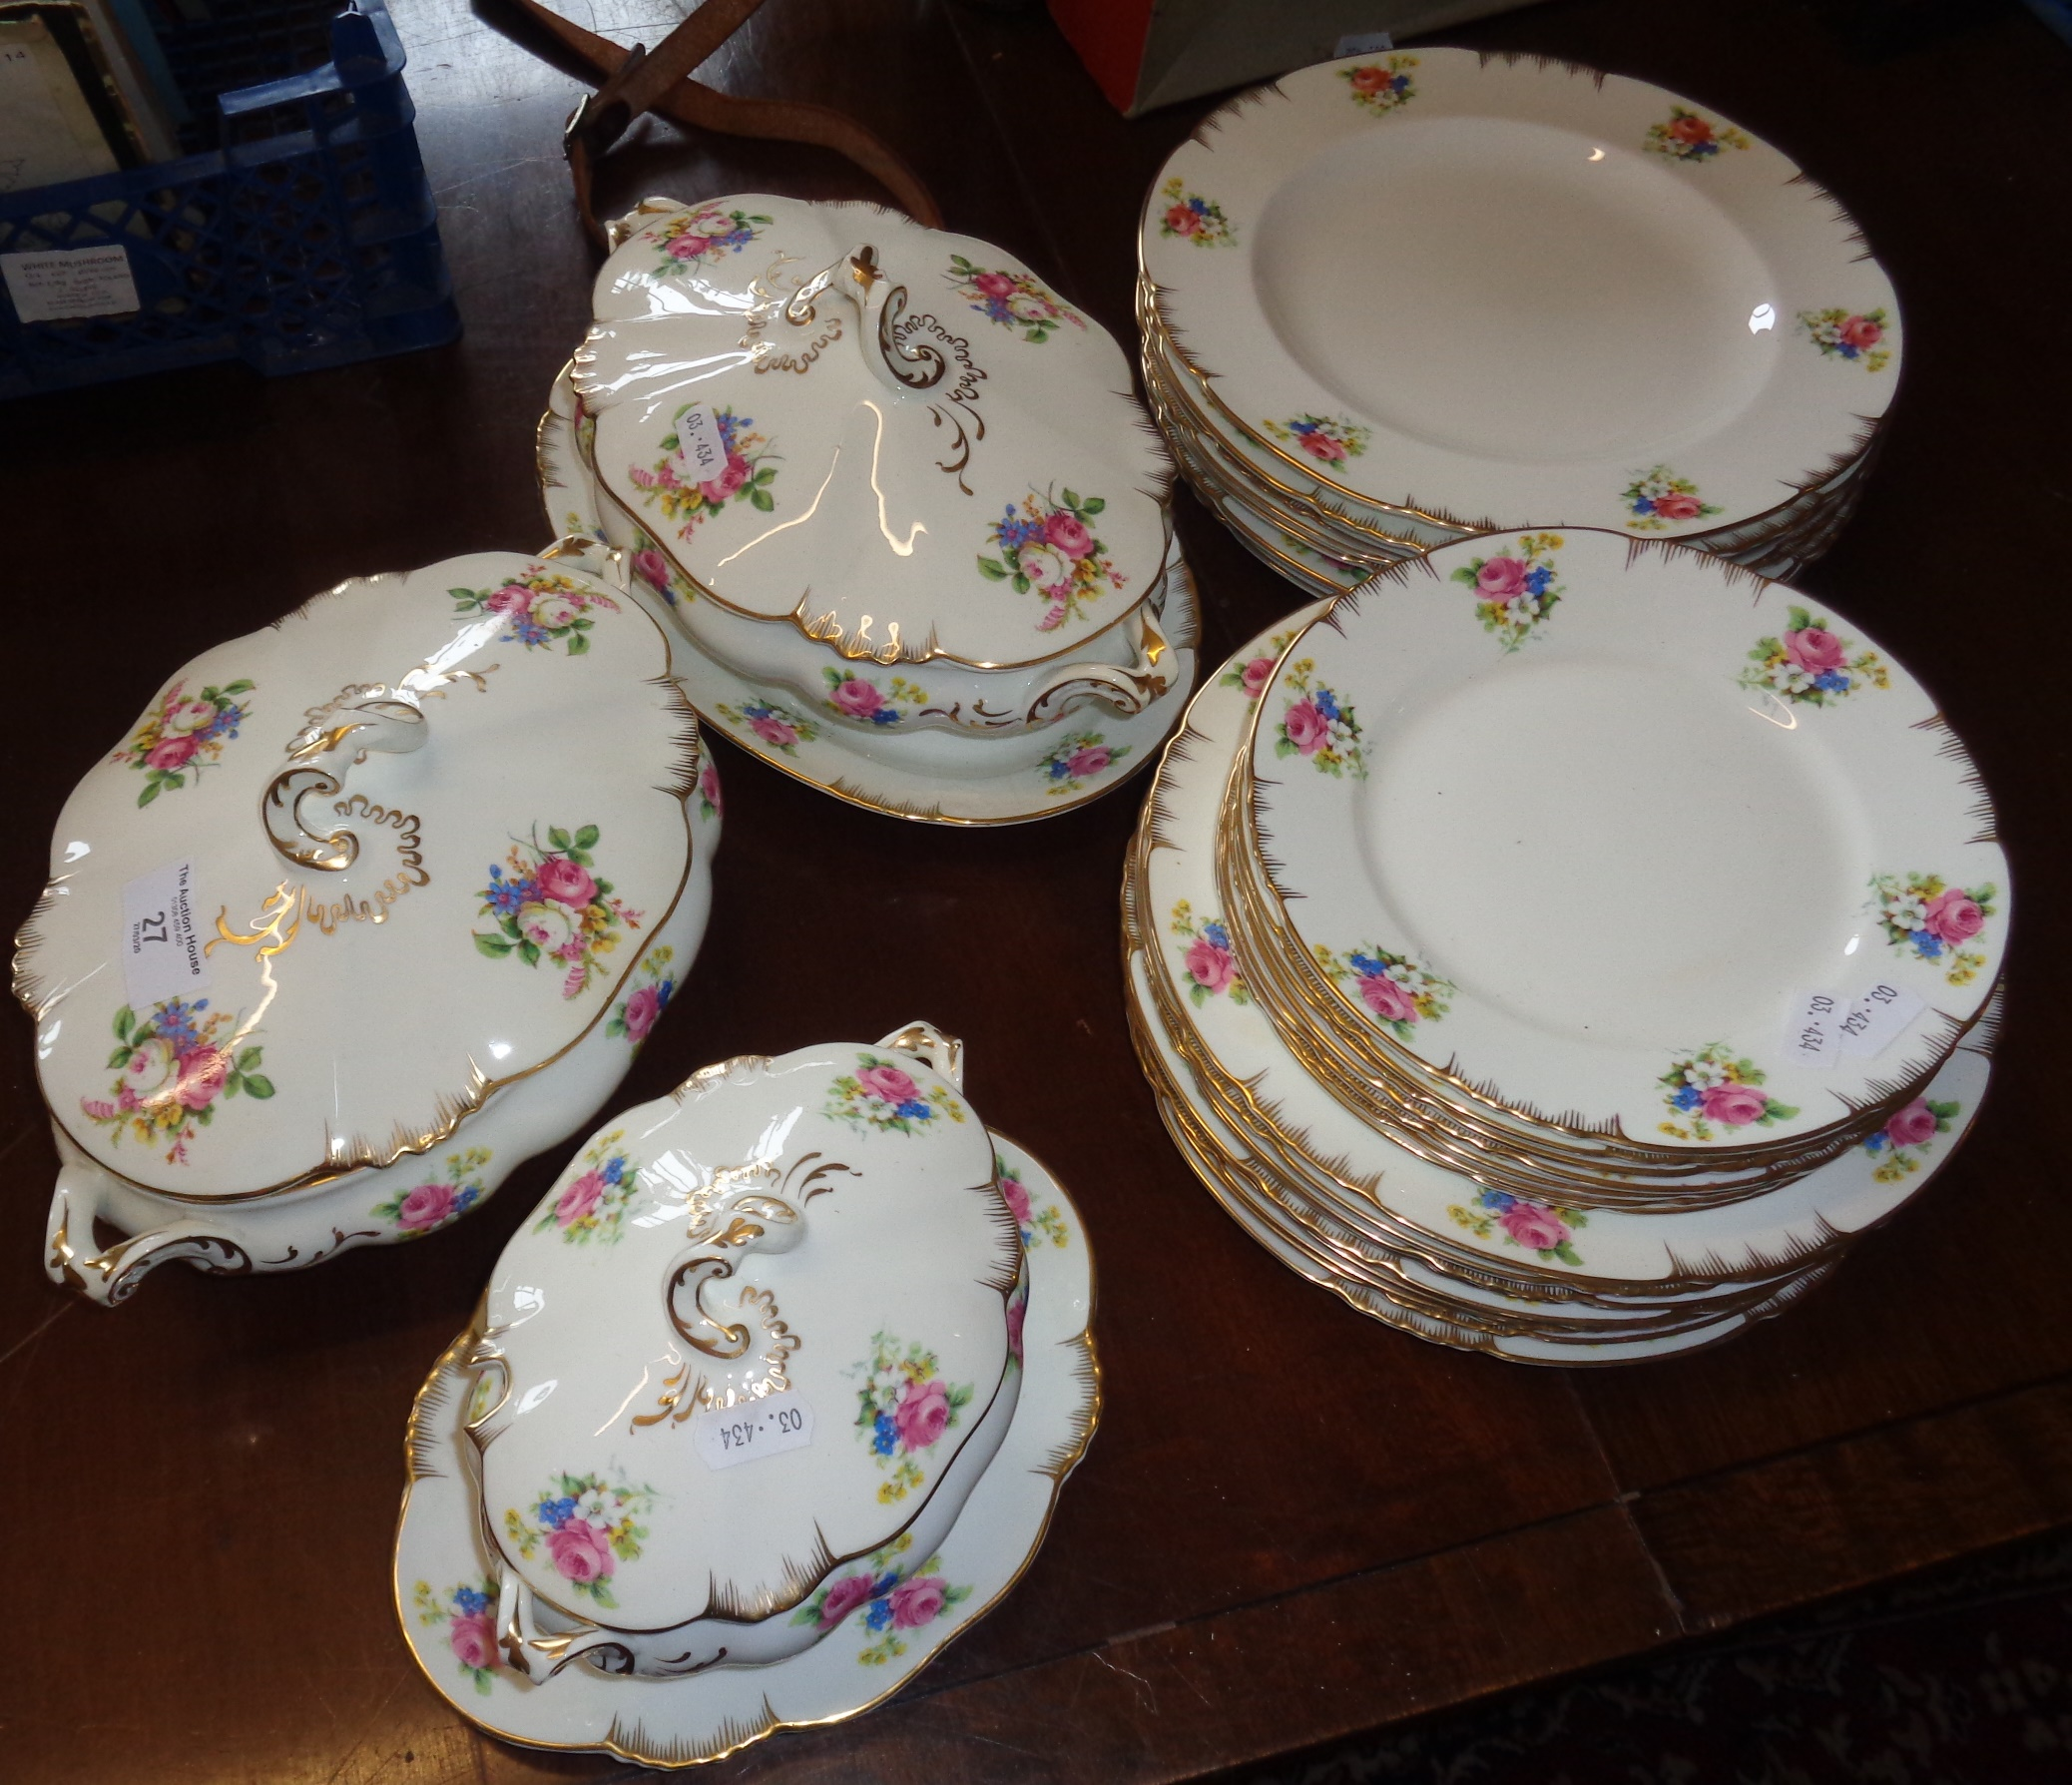 Lot 27 - Crescent china dinner service with floral pattern